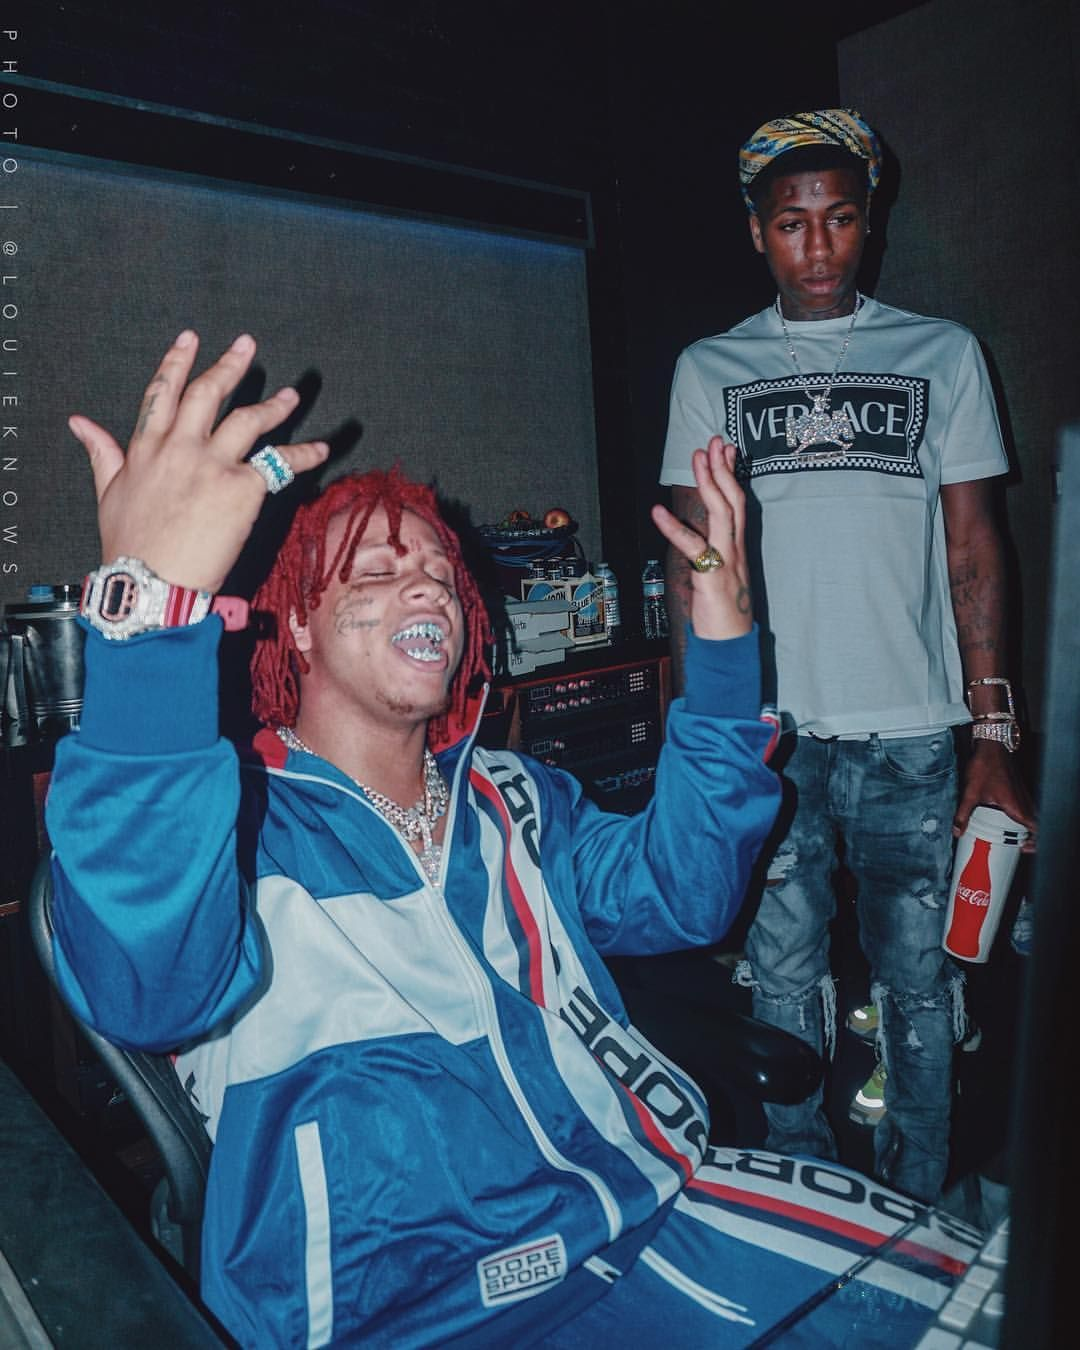 Shark Boy And Youngboy Goin 30 Until The Wee Hours Of Da Mornin 1 4 Xnba Louieknows Trippieredd Nbayoungboy Trippie Redd Rap Album Covers Rappers